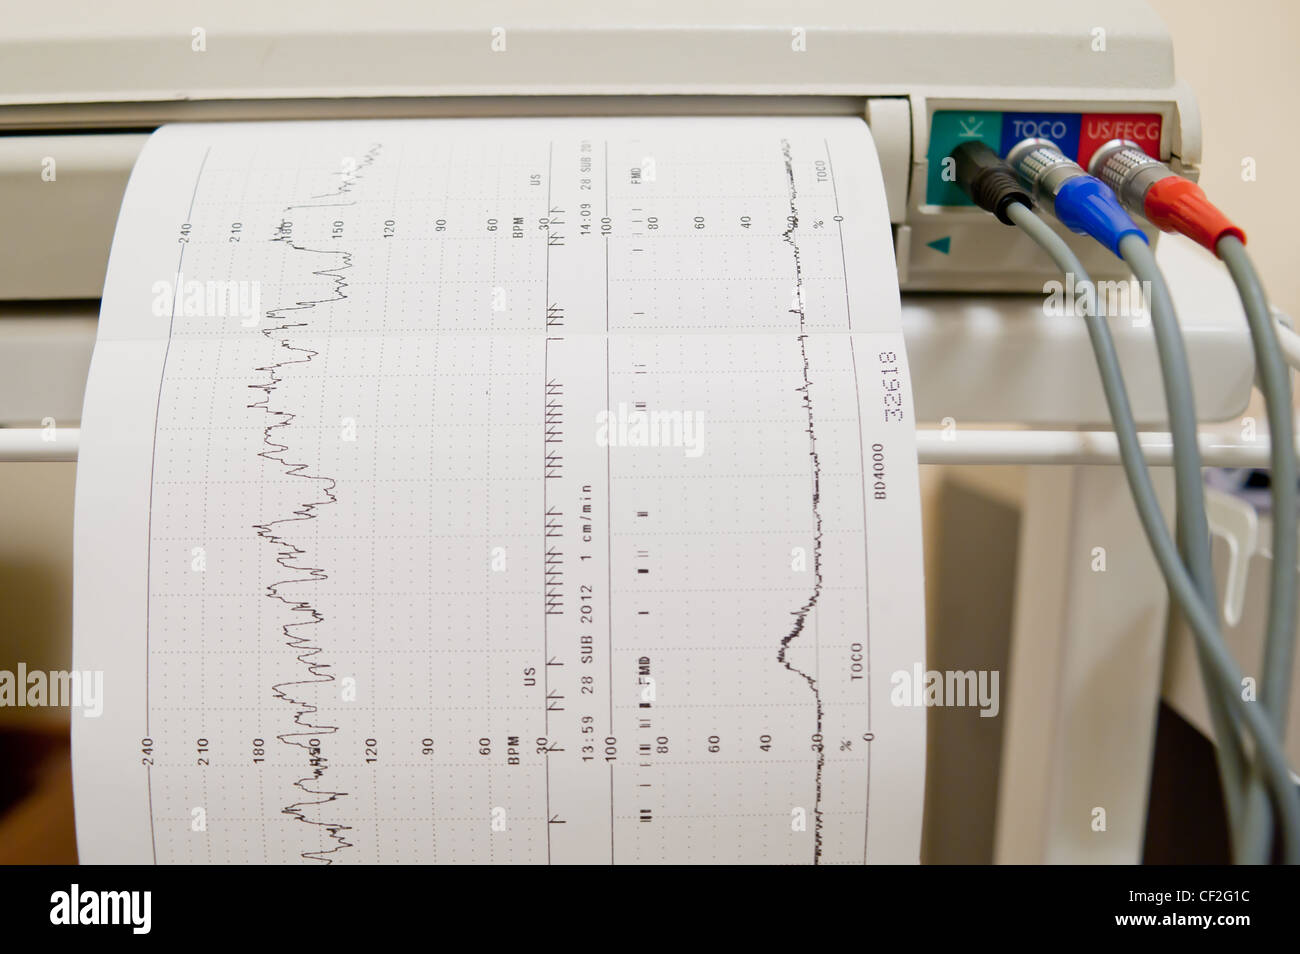 Cardiogram Ekg heart pulse results on the paper - Stock Image